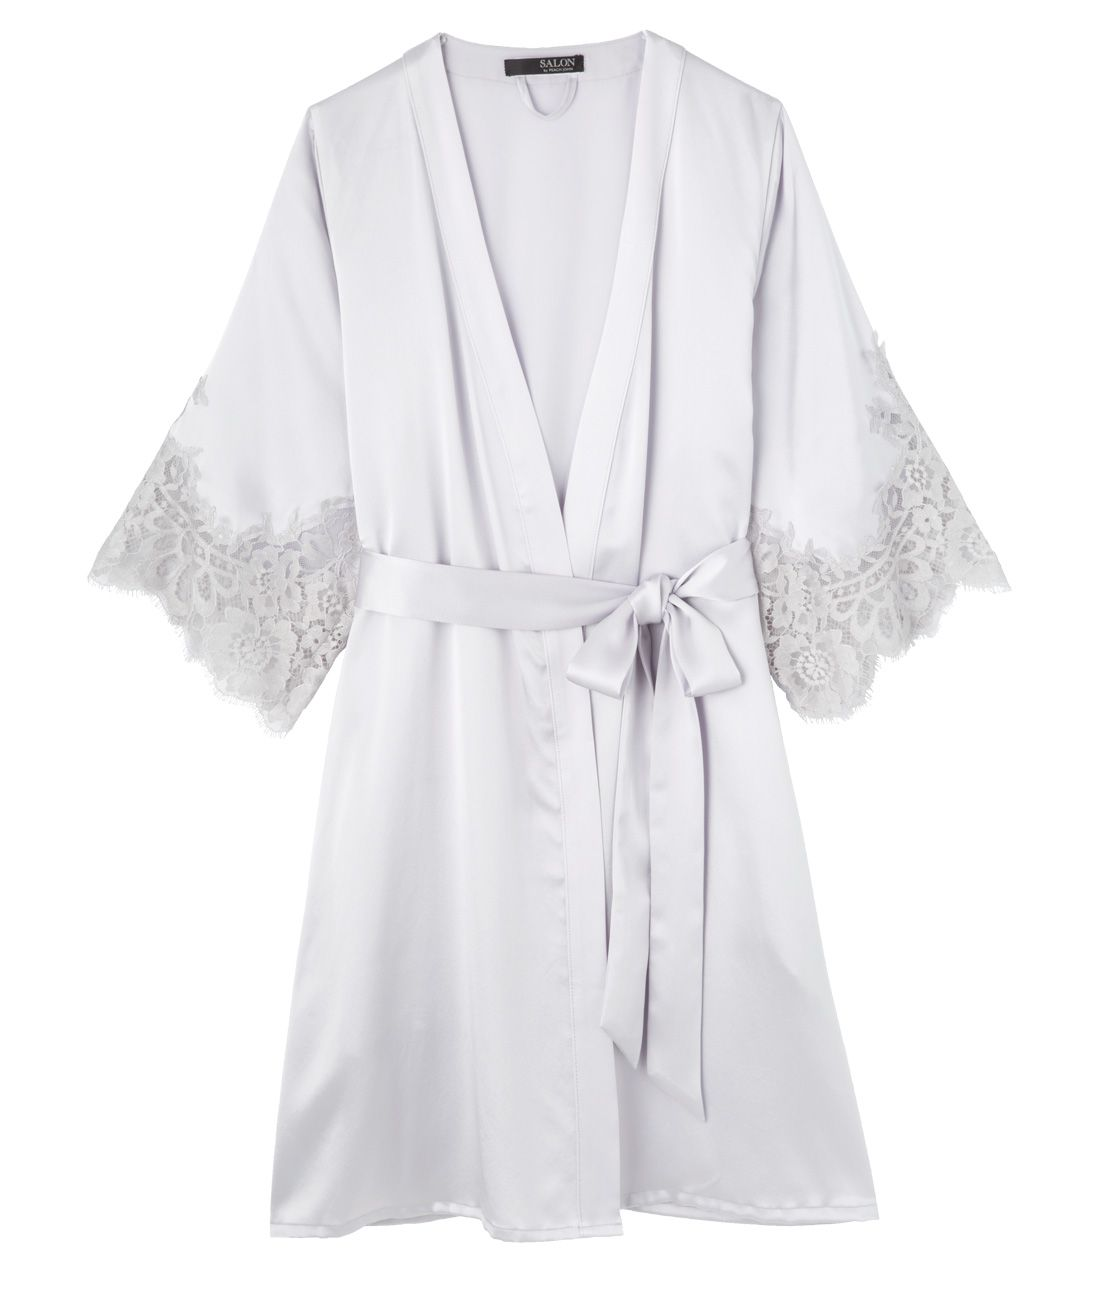 Silk satin rate Consequences robe